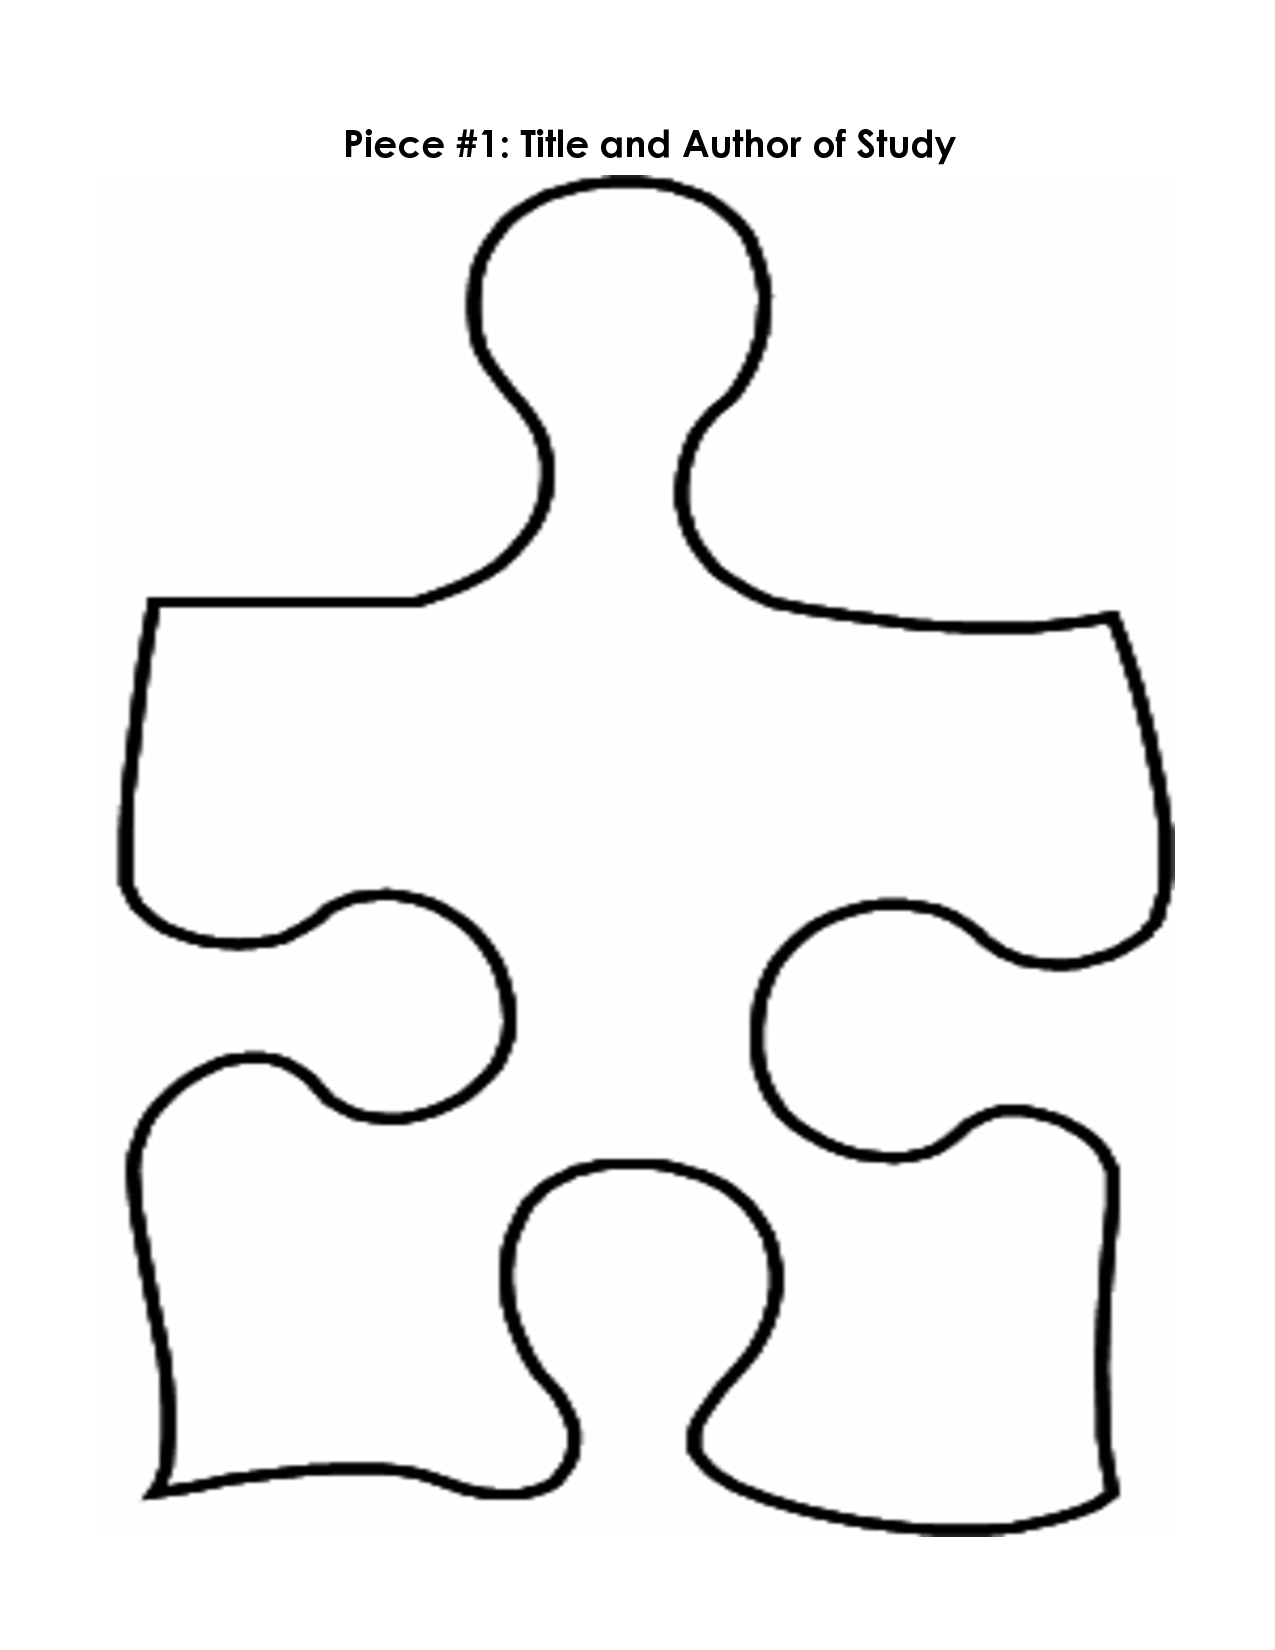 Free Puzzle Pieces Template, Download Free Clip Art, Free Clip Art - Printable Large Puzzle